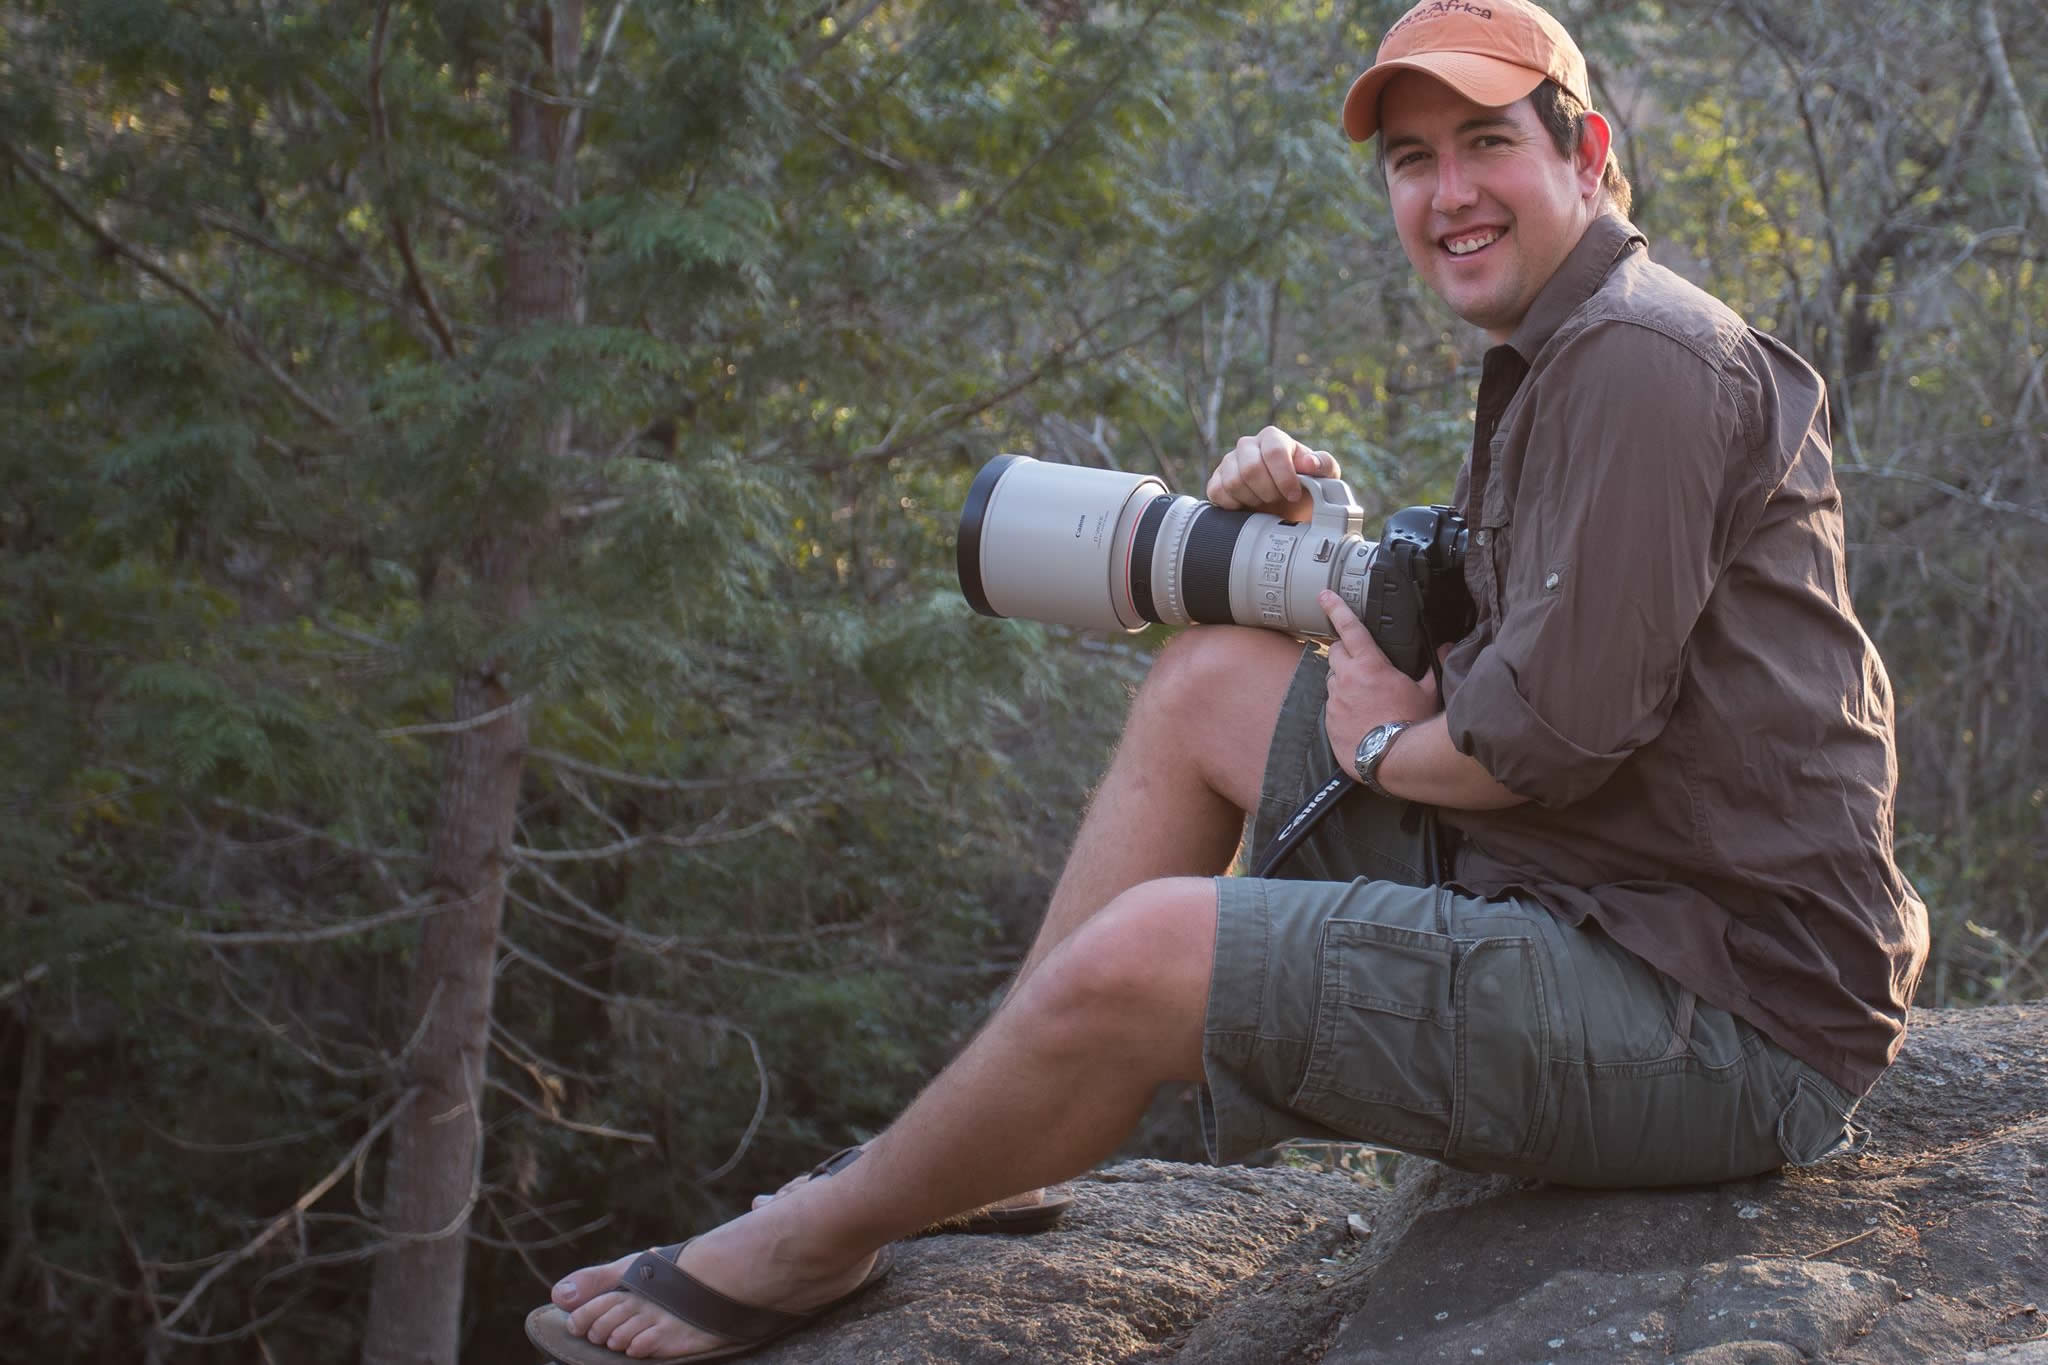 Johan Van Zyl, Professional Wildlife Photographer and Photography Safri Tour Guide in South Africa, Mpumalanga